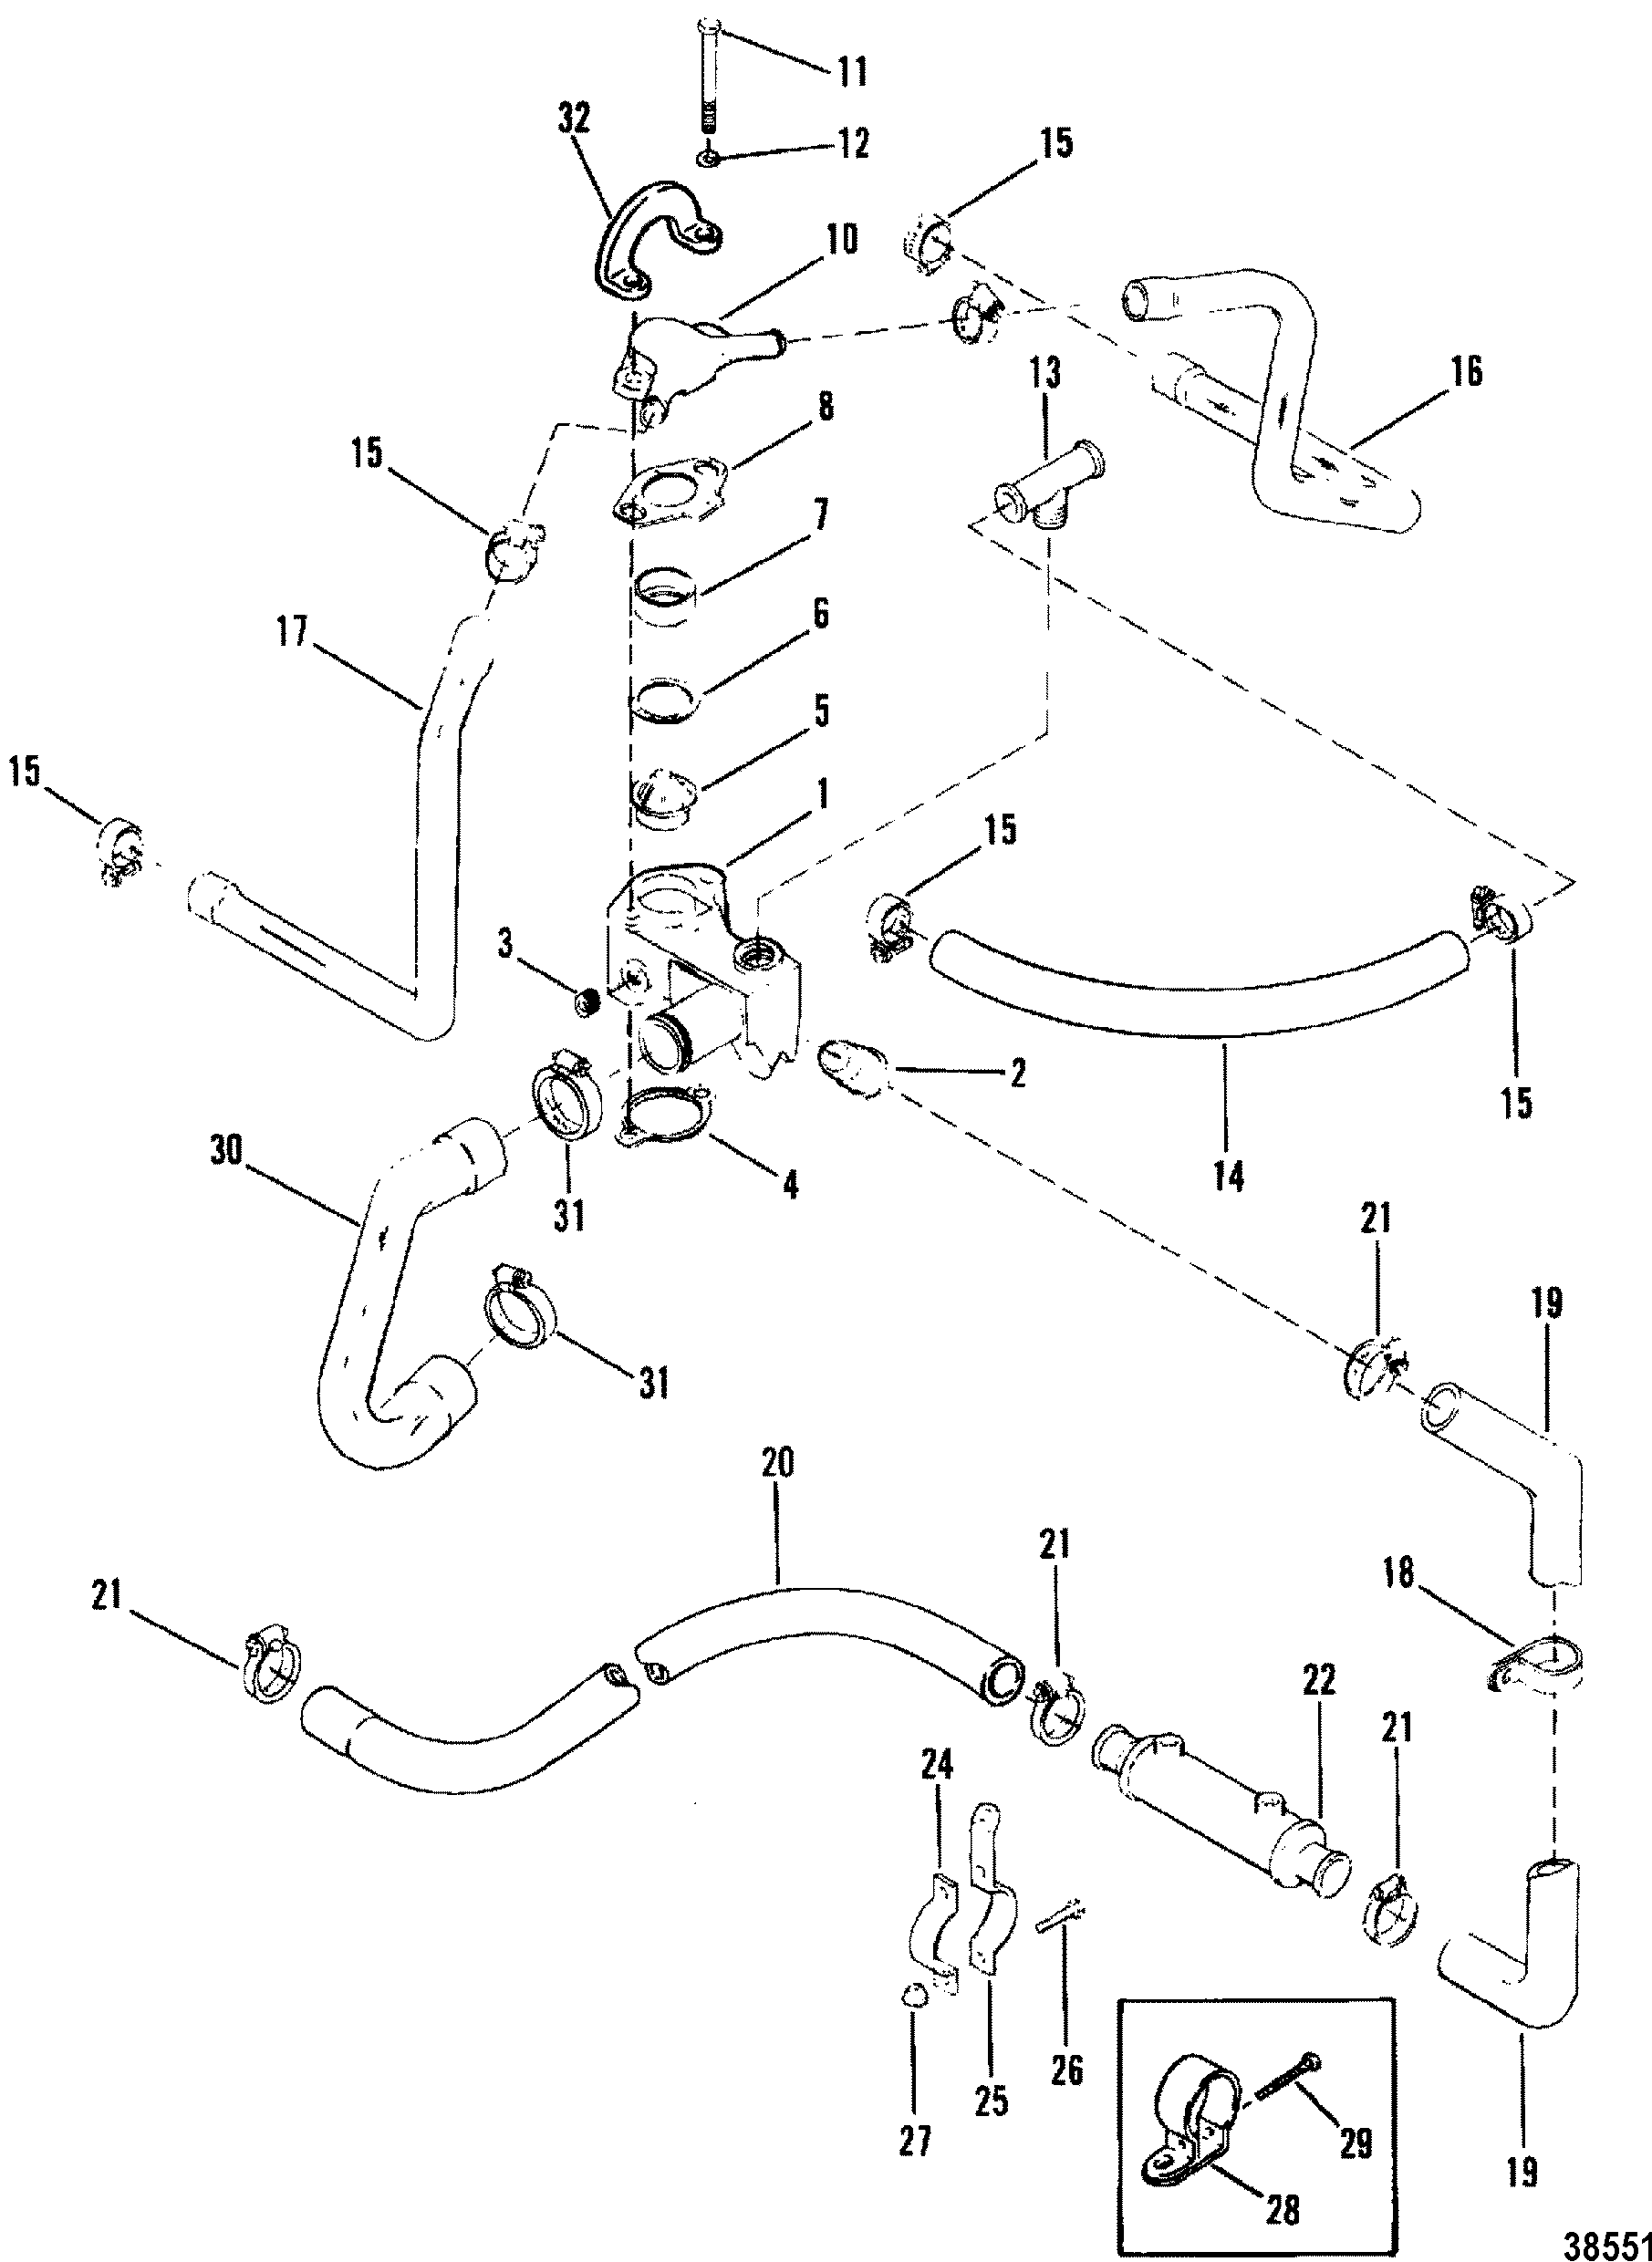 Standard Cooling System Design I For Mercruiser 200 5 0l